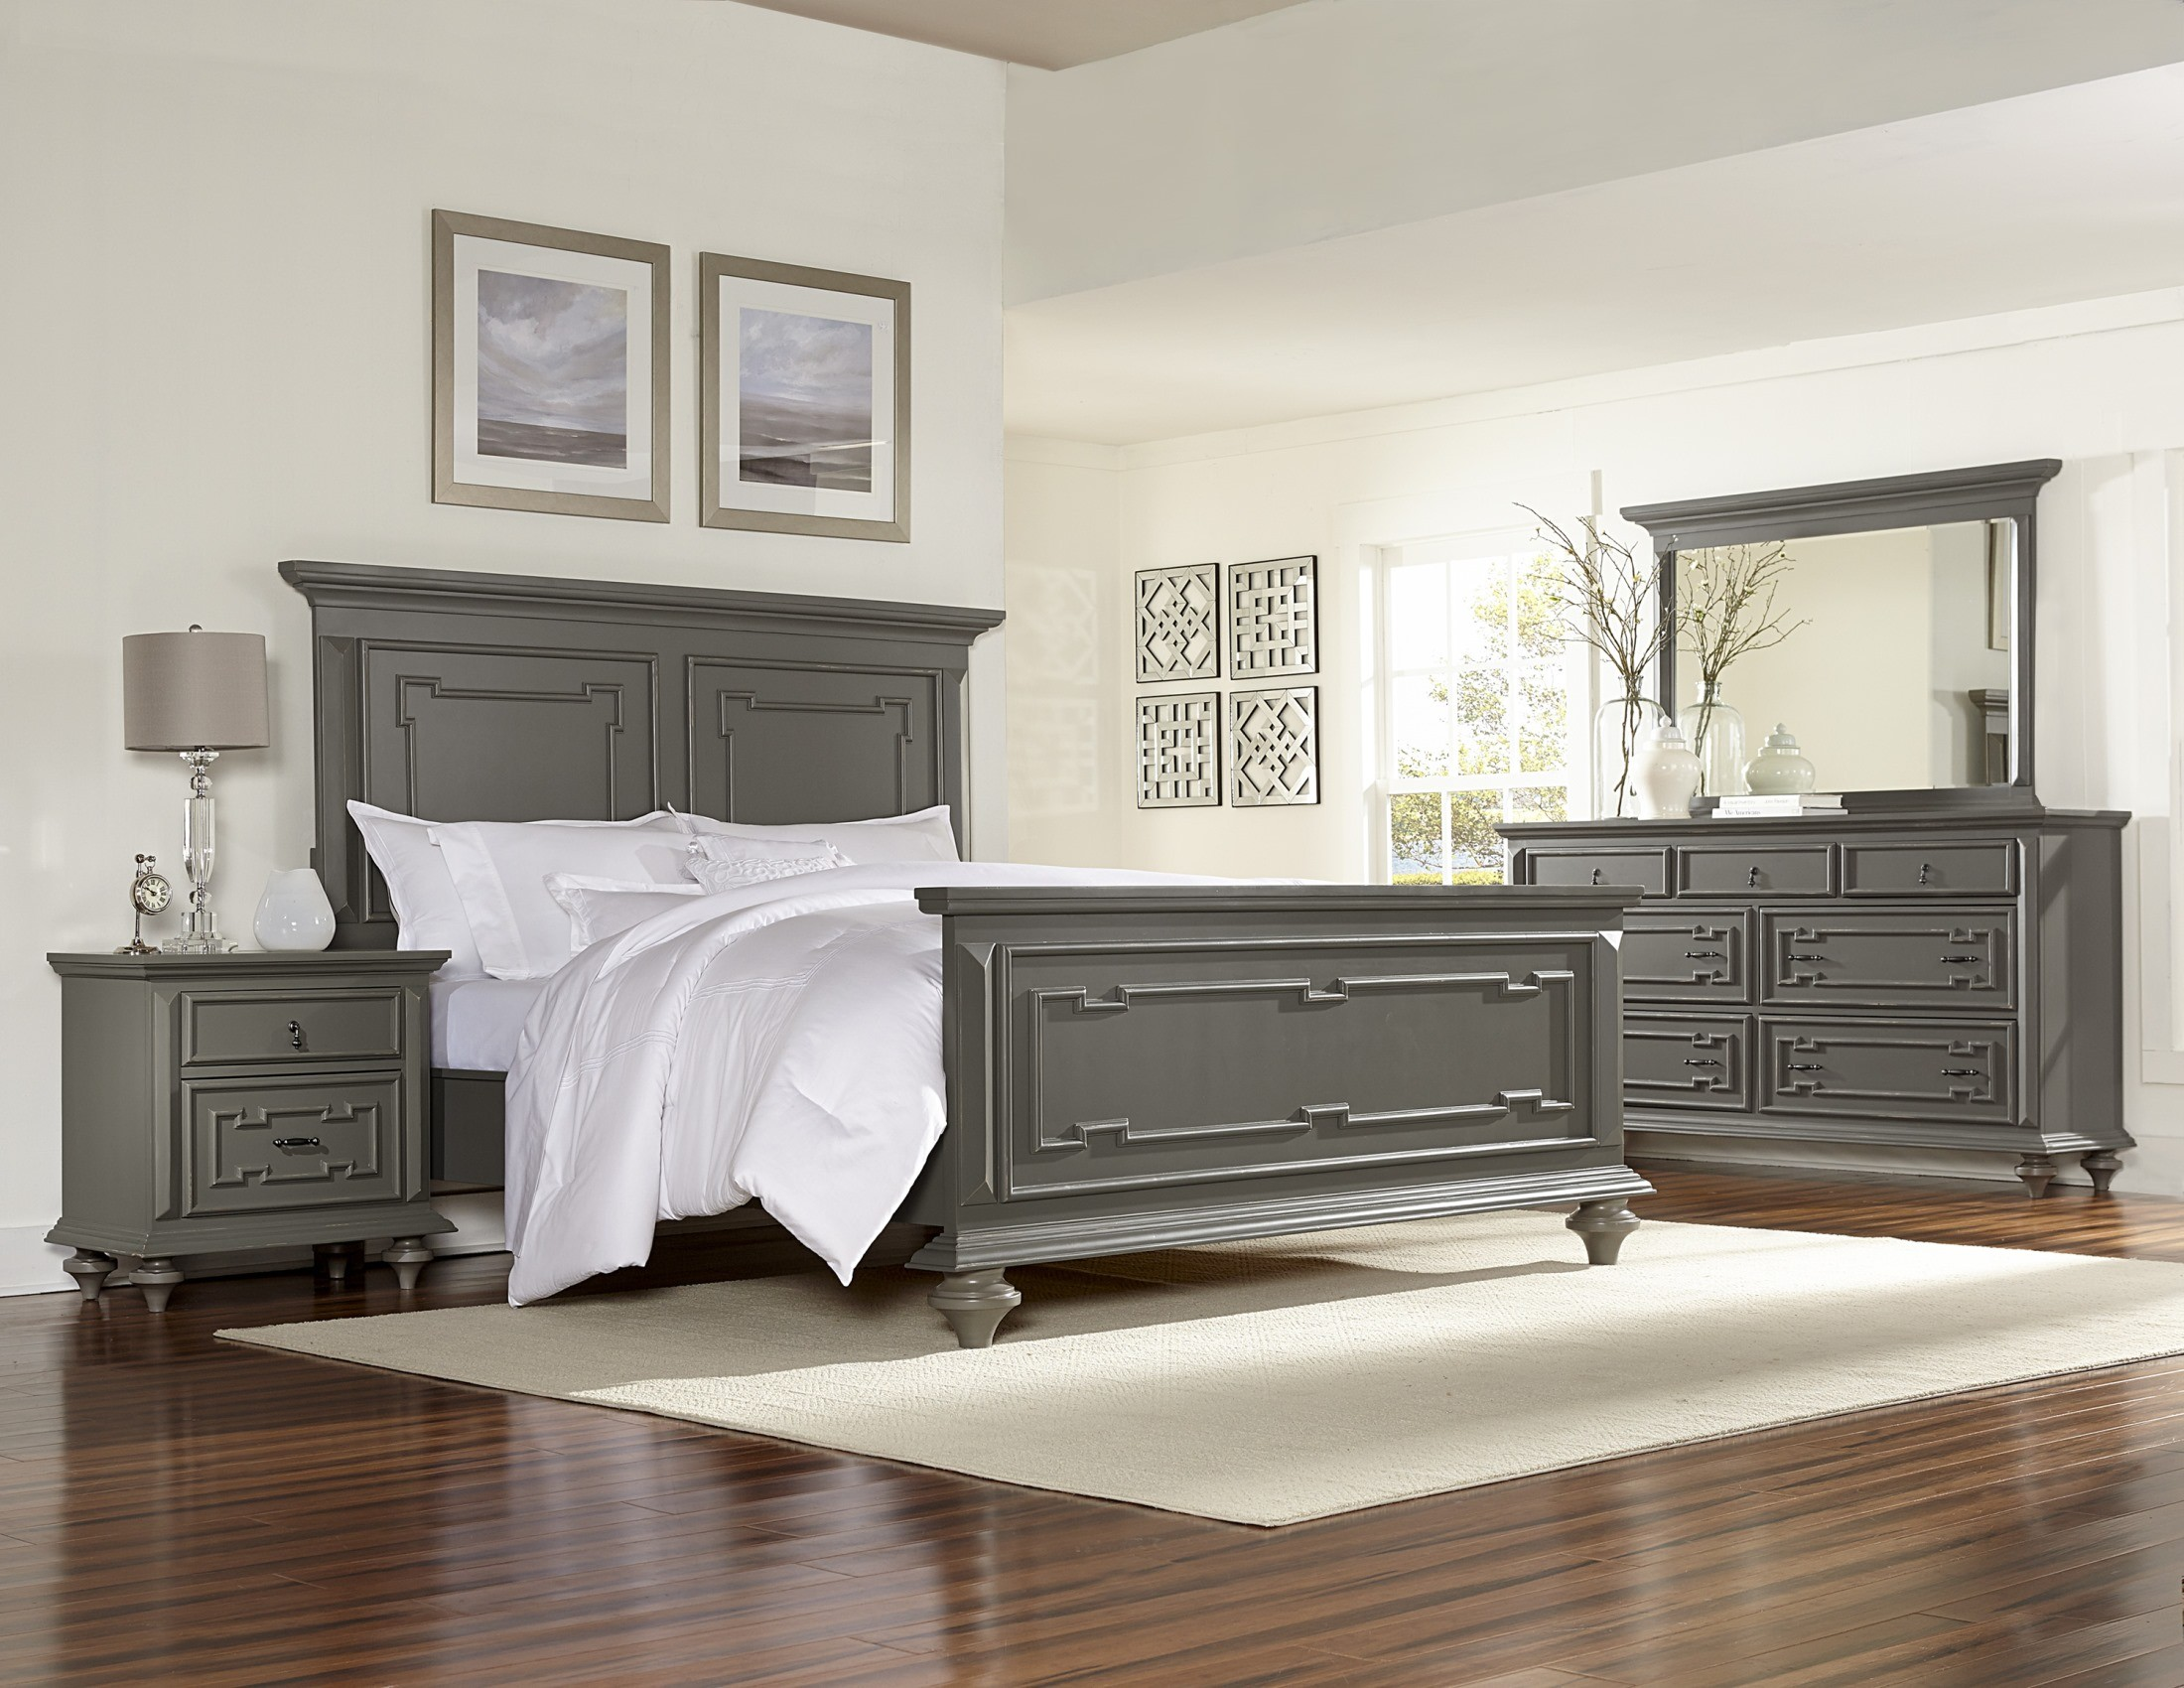 Marceline Grey Panel Bedroom Set from Homelegance 1866 1